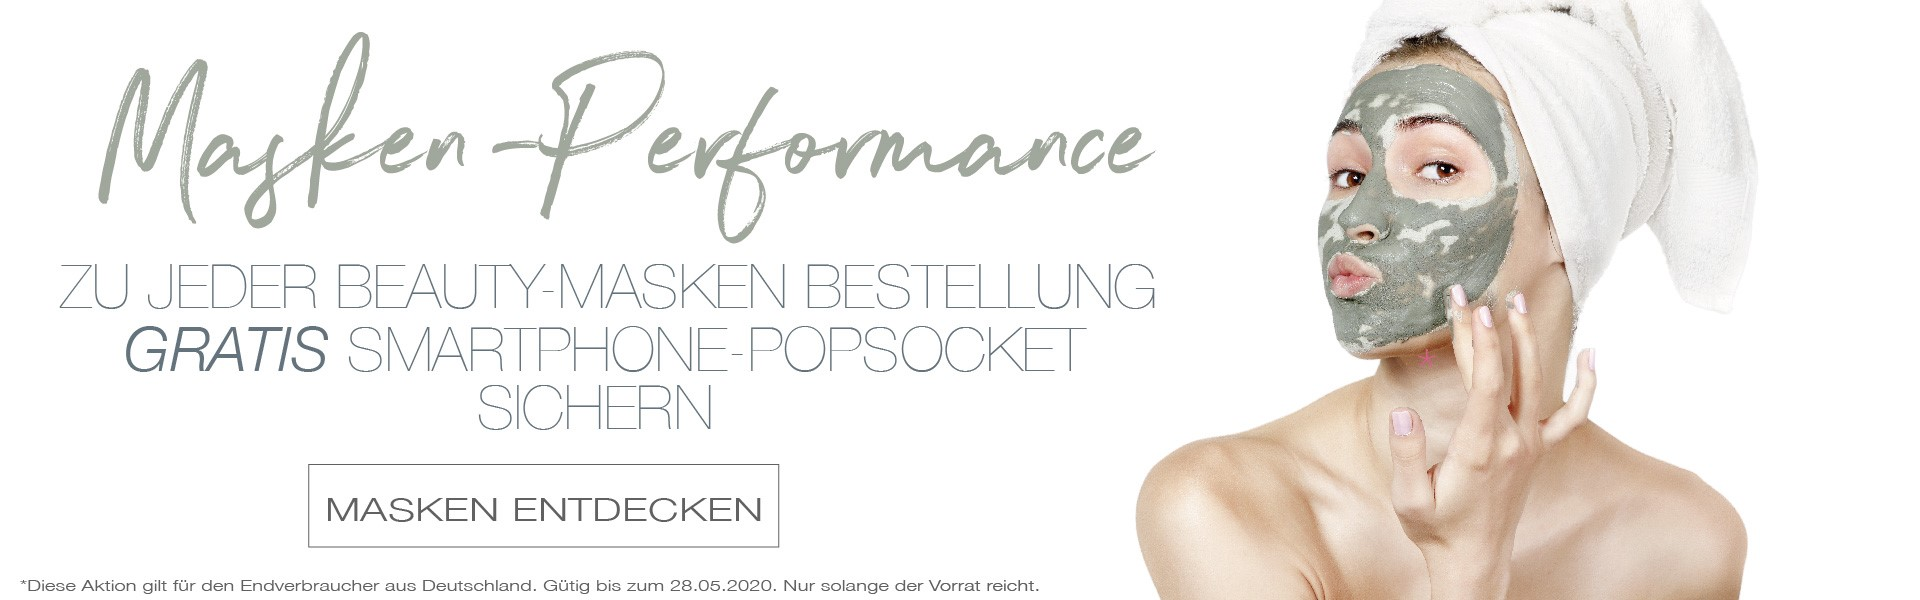 Masken-Performance